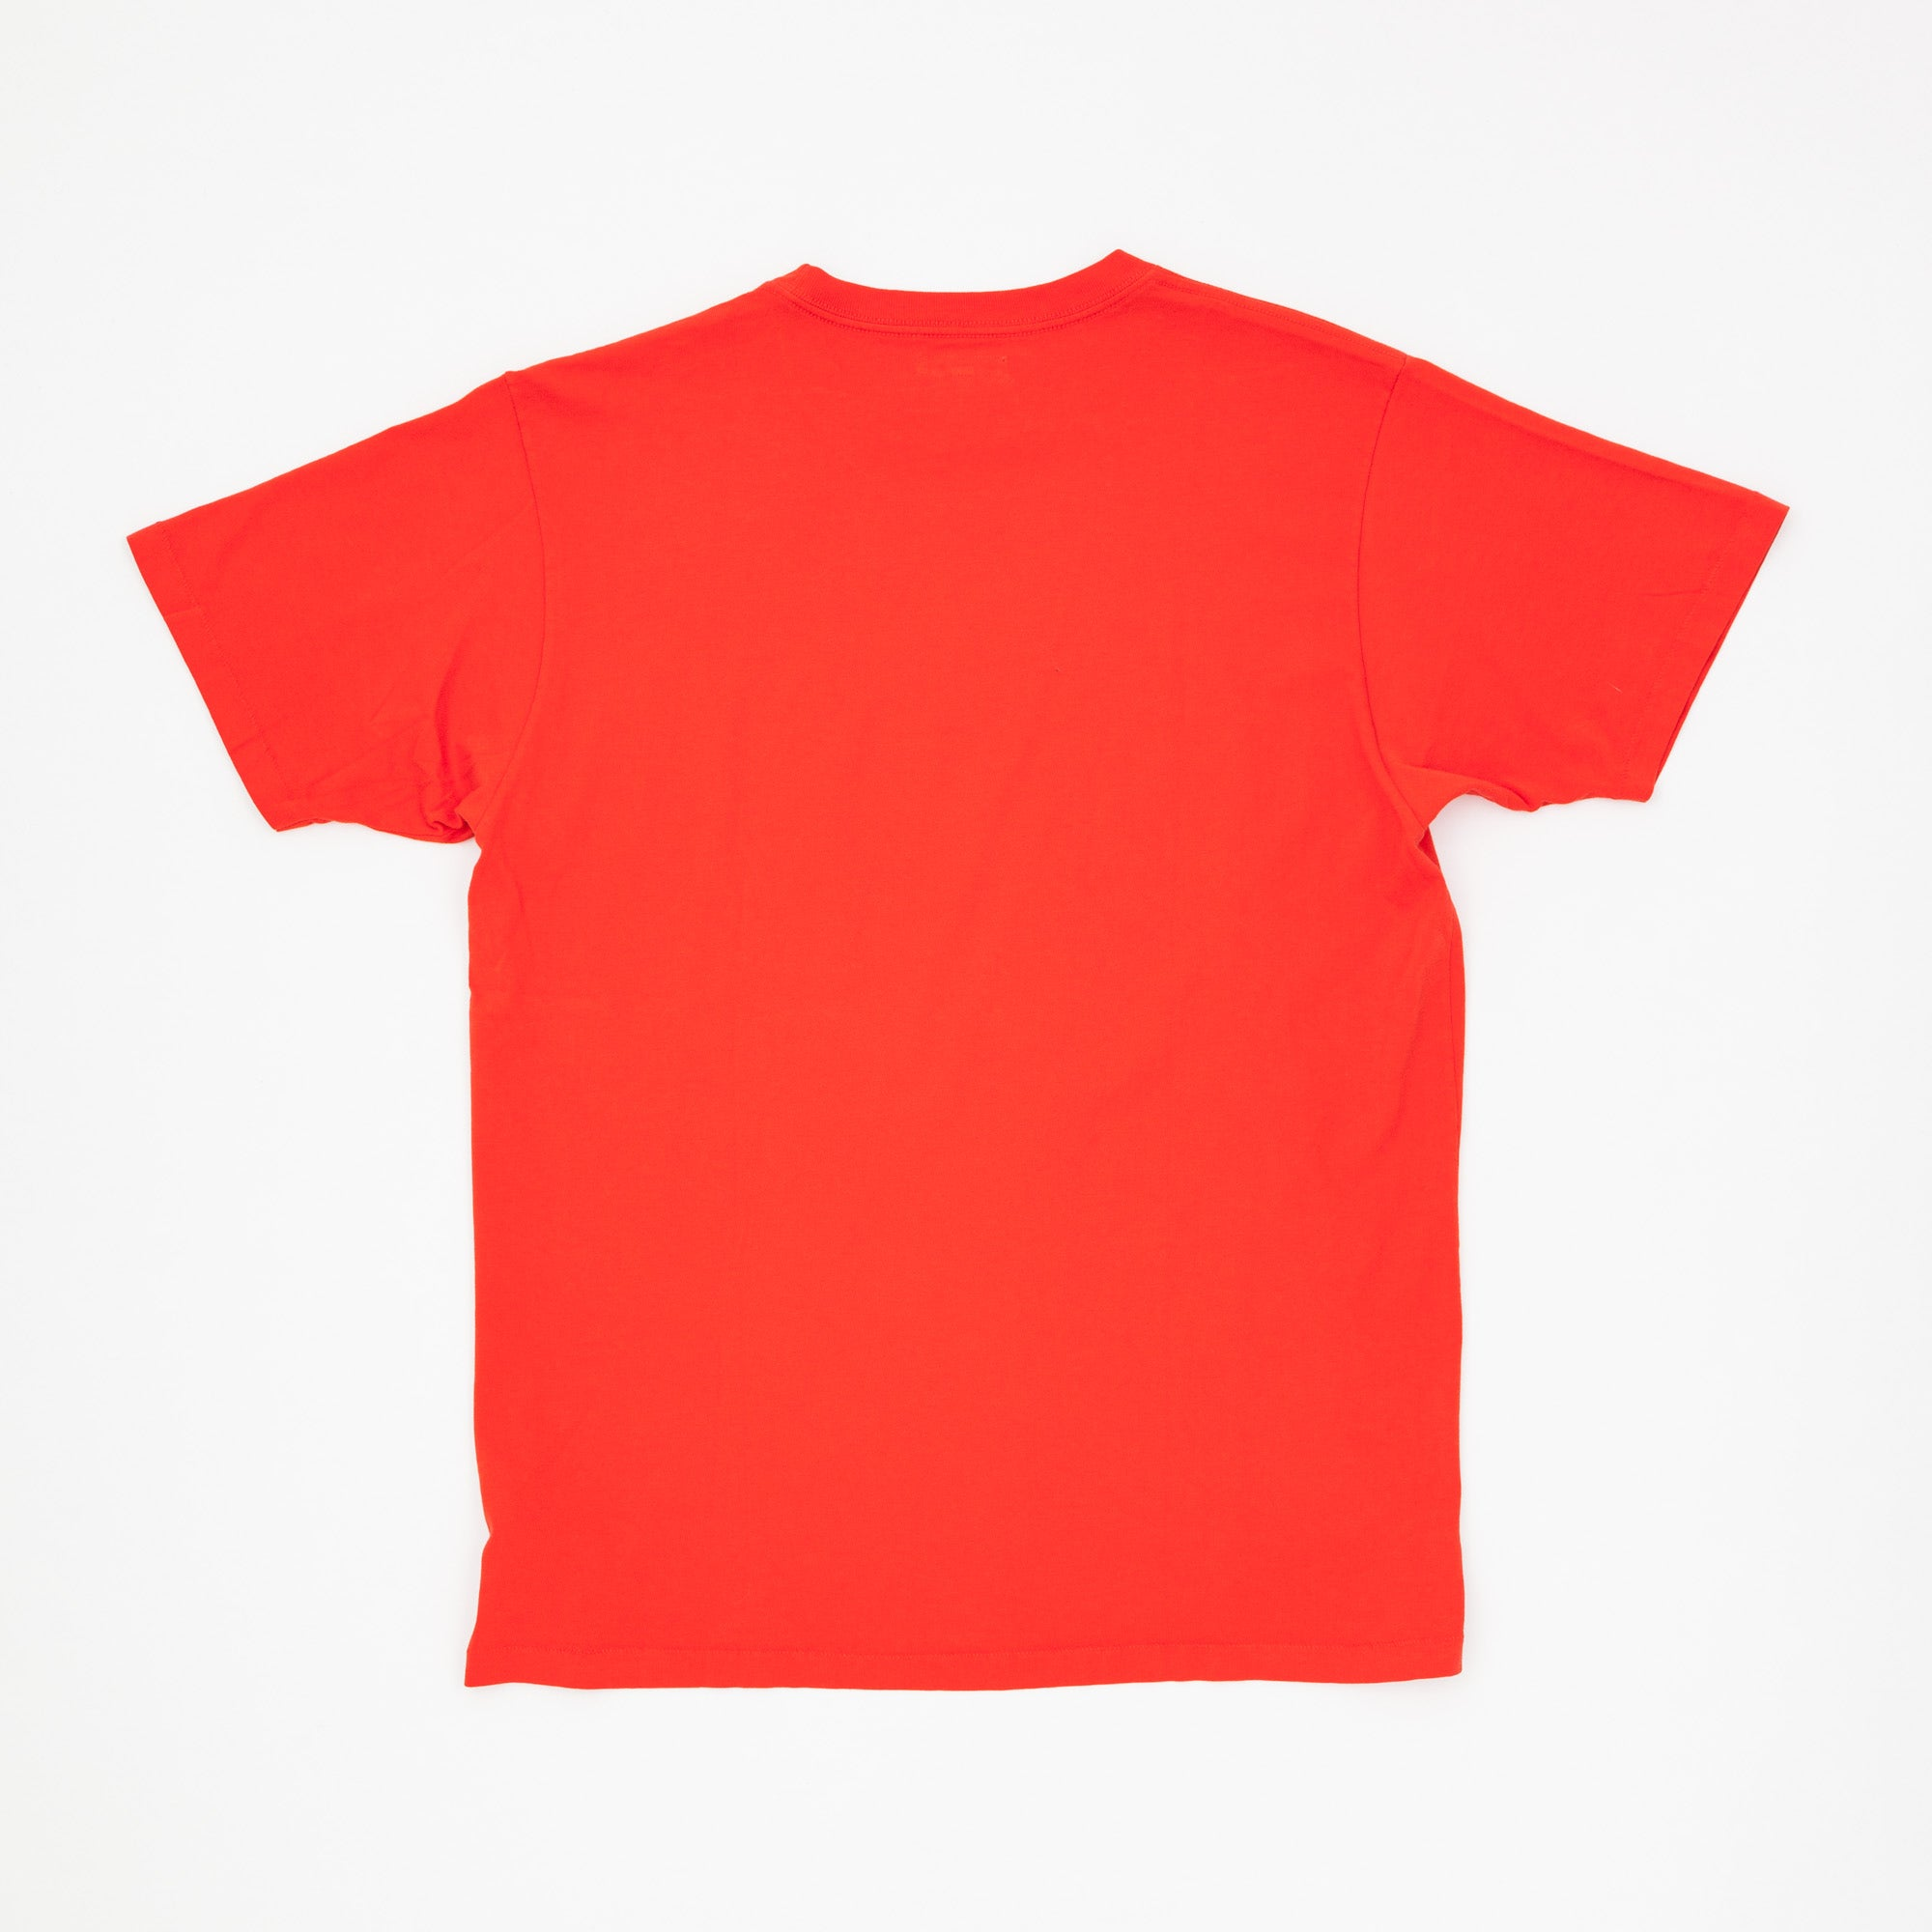 Tubular Cotton Tee